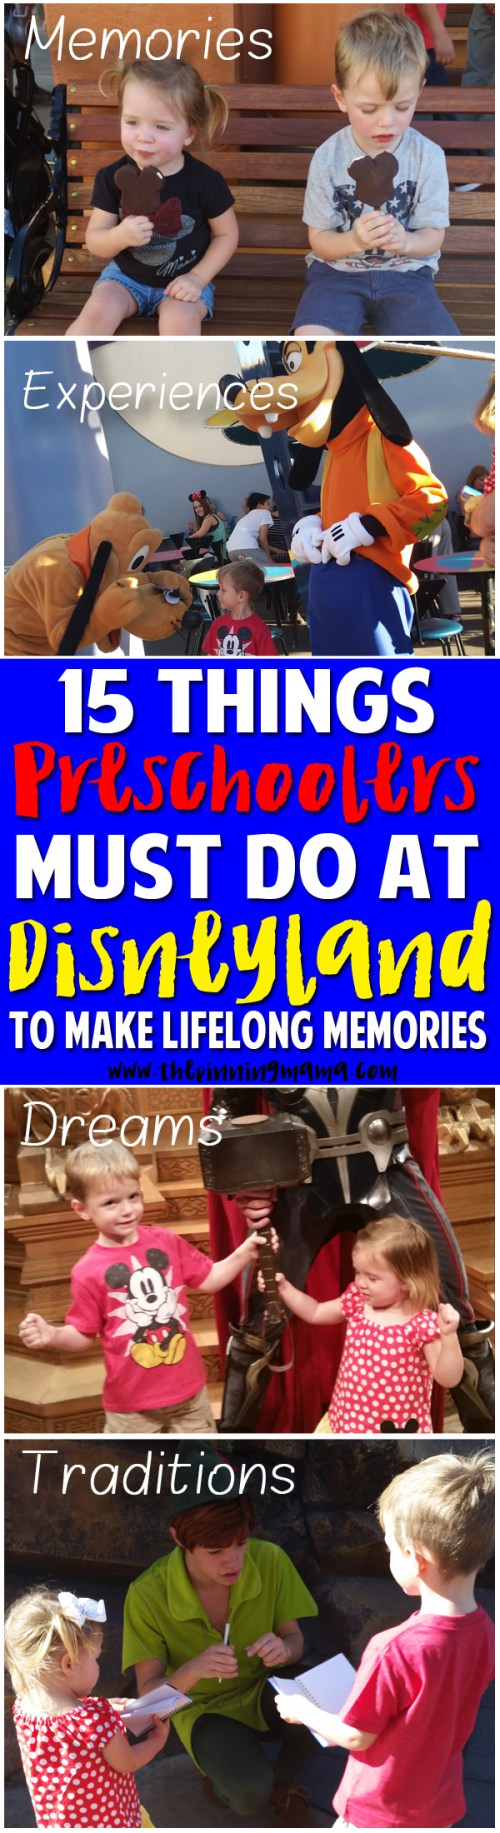 15 MUST DO's with Your Preschooler at Disneyland • The Pinning Mama